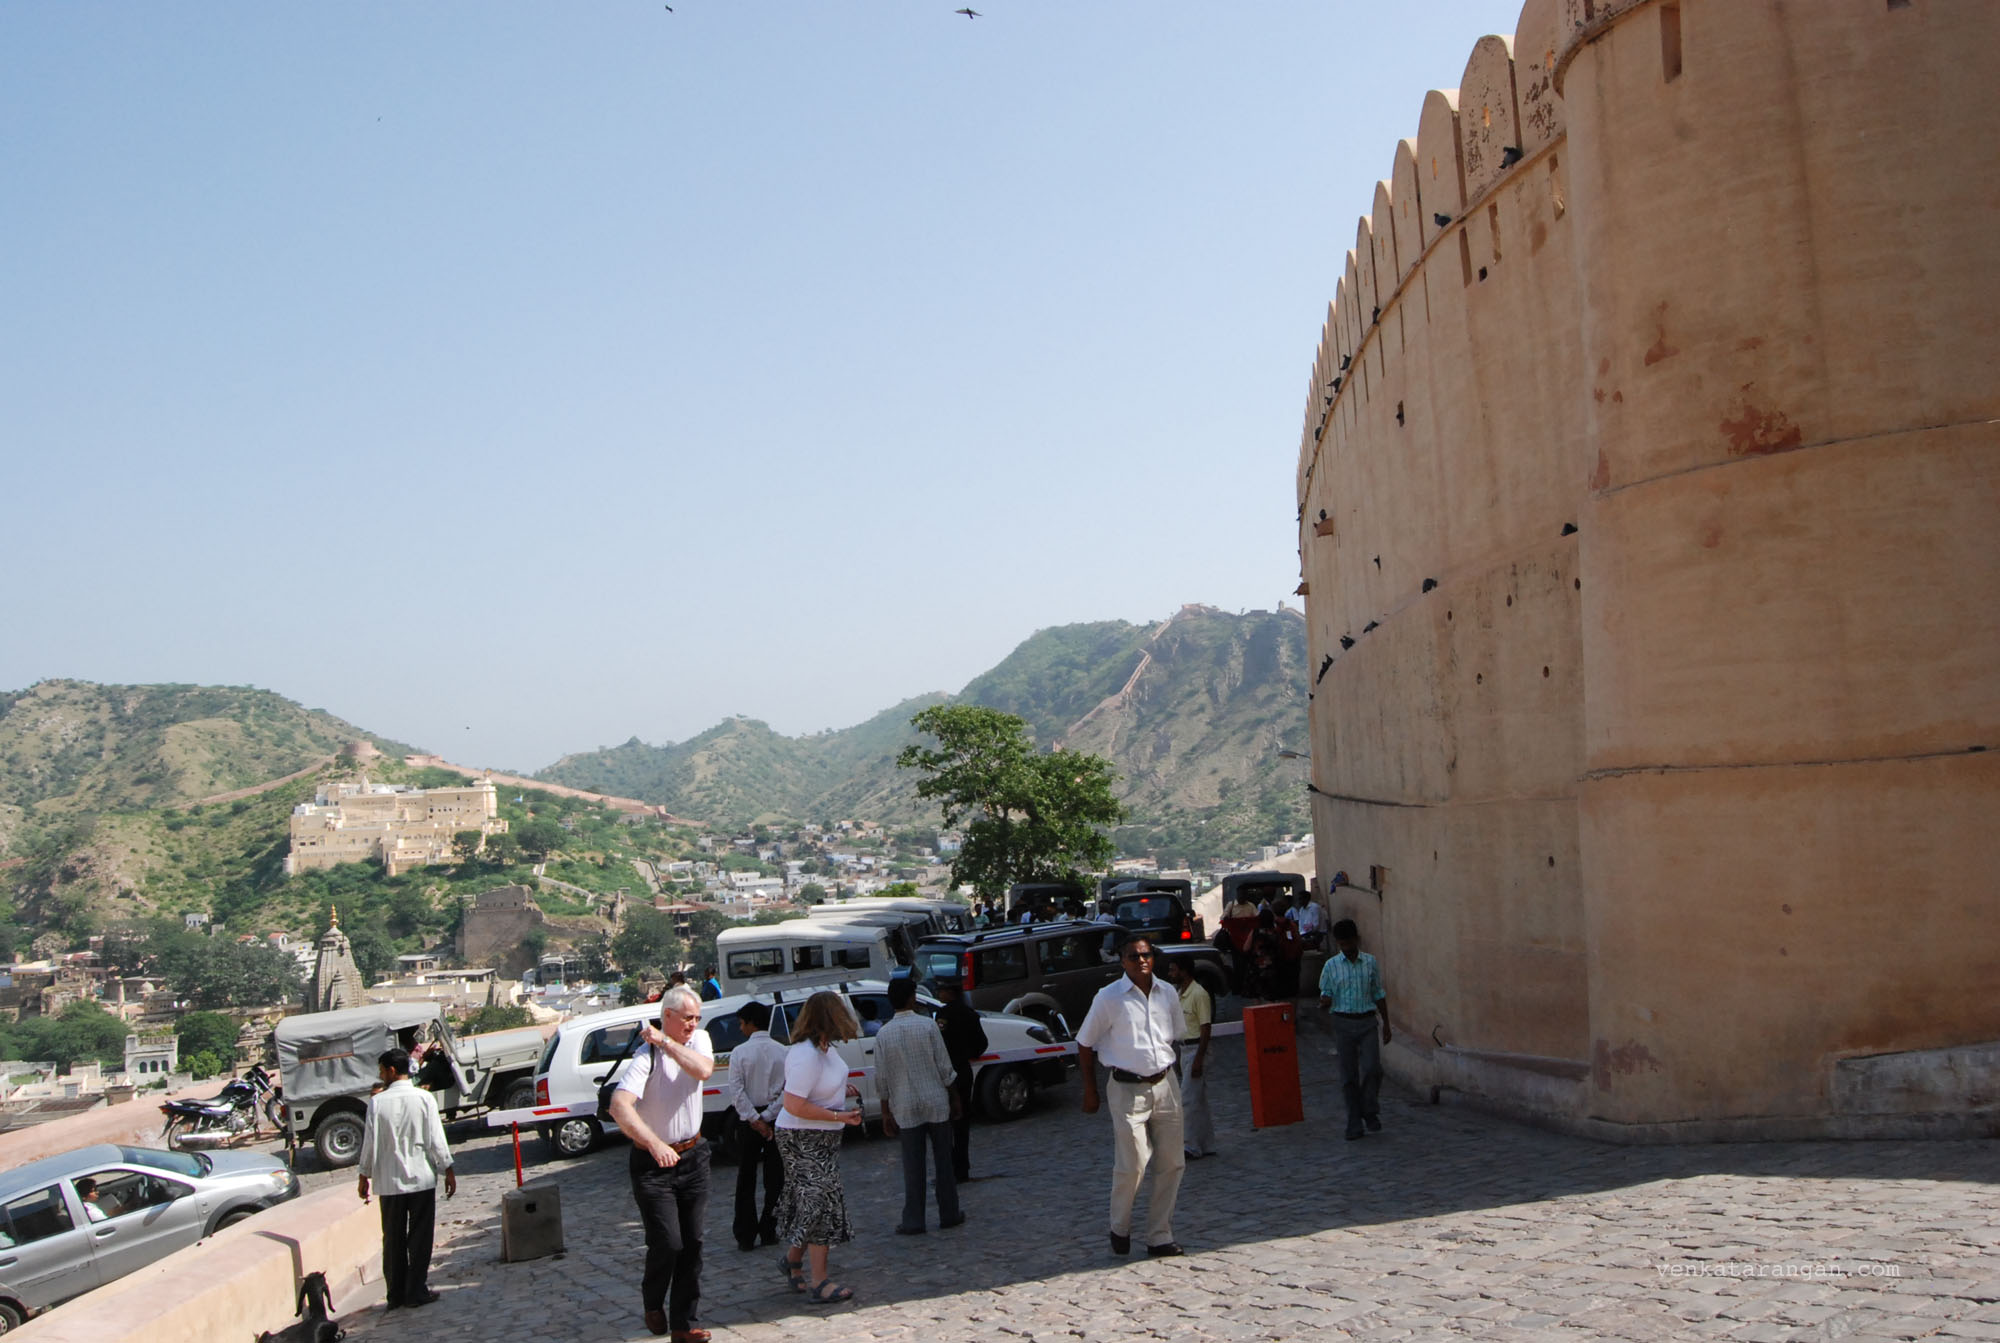 The mighty walls of the Amber fort